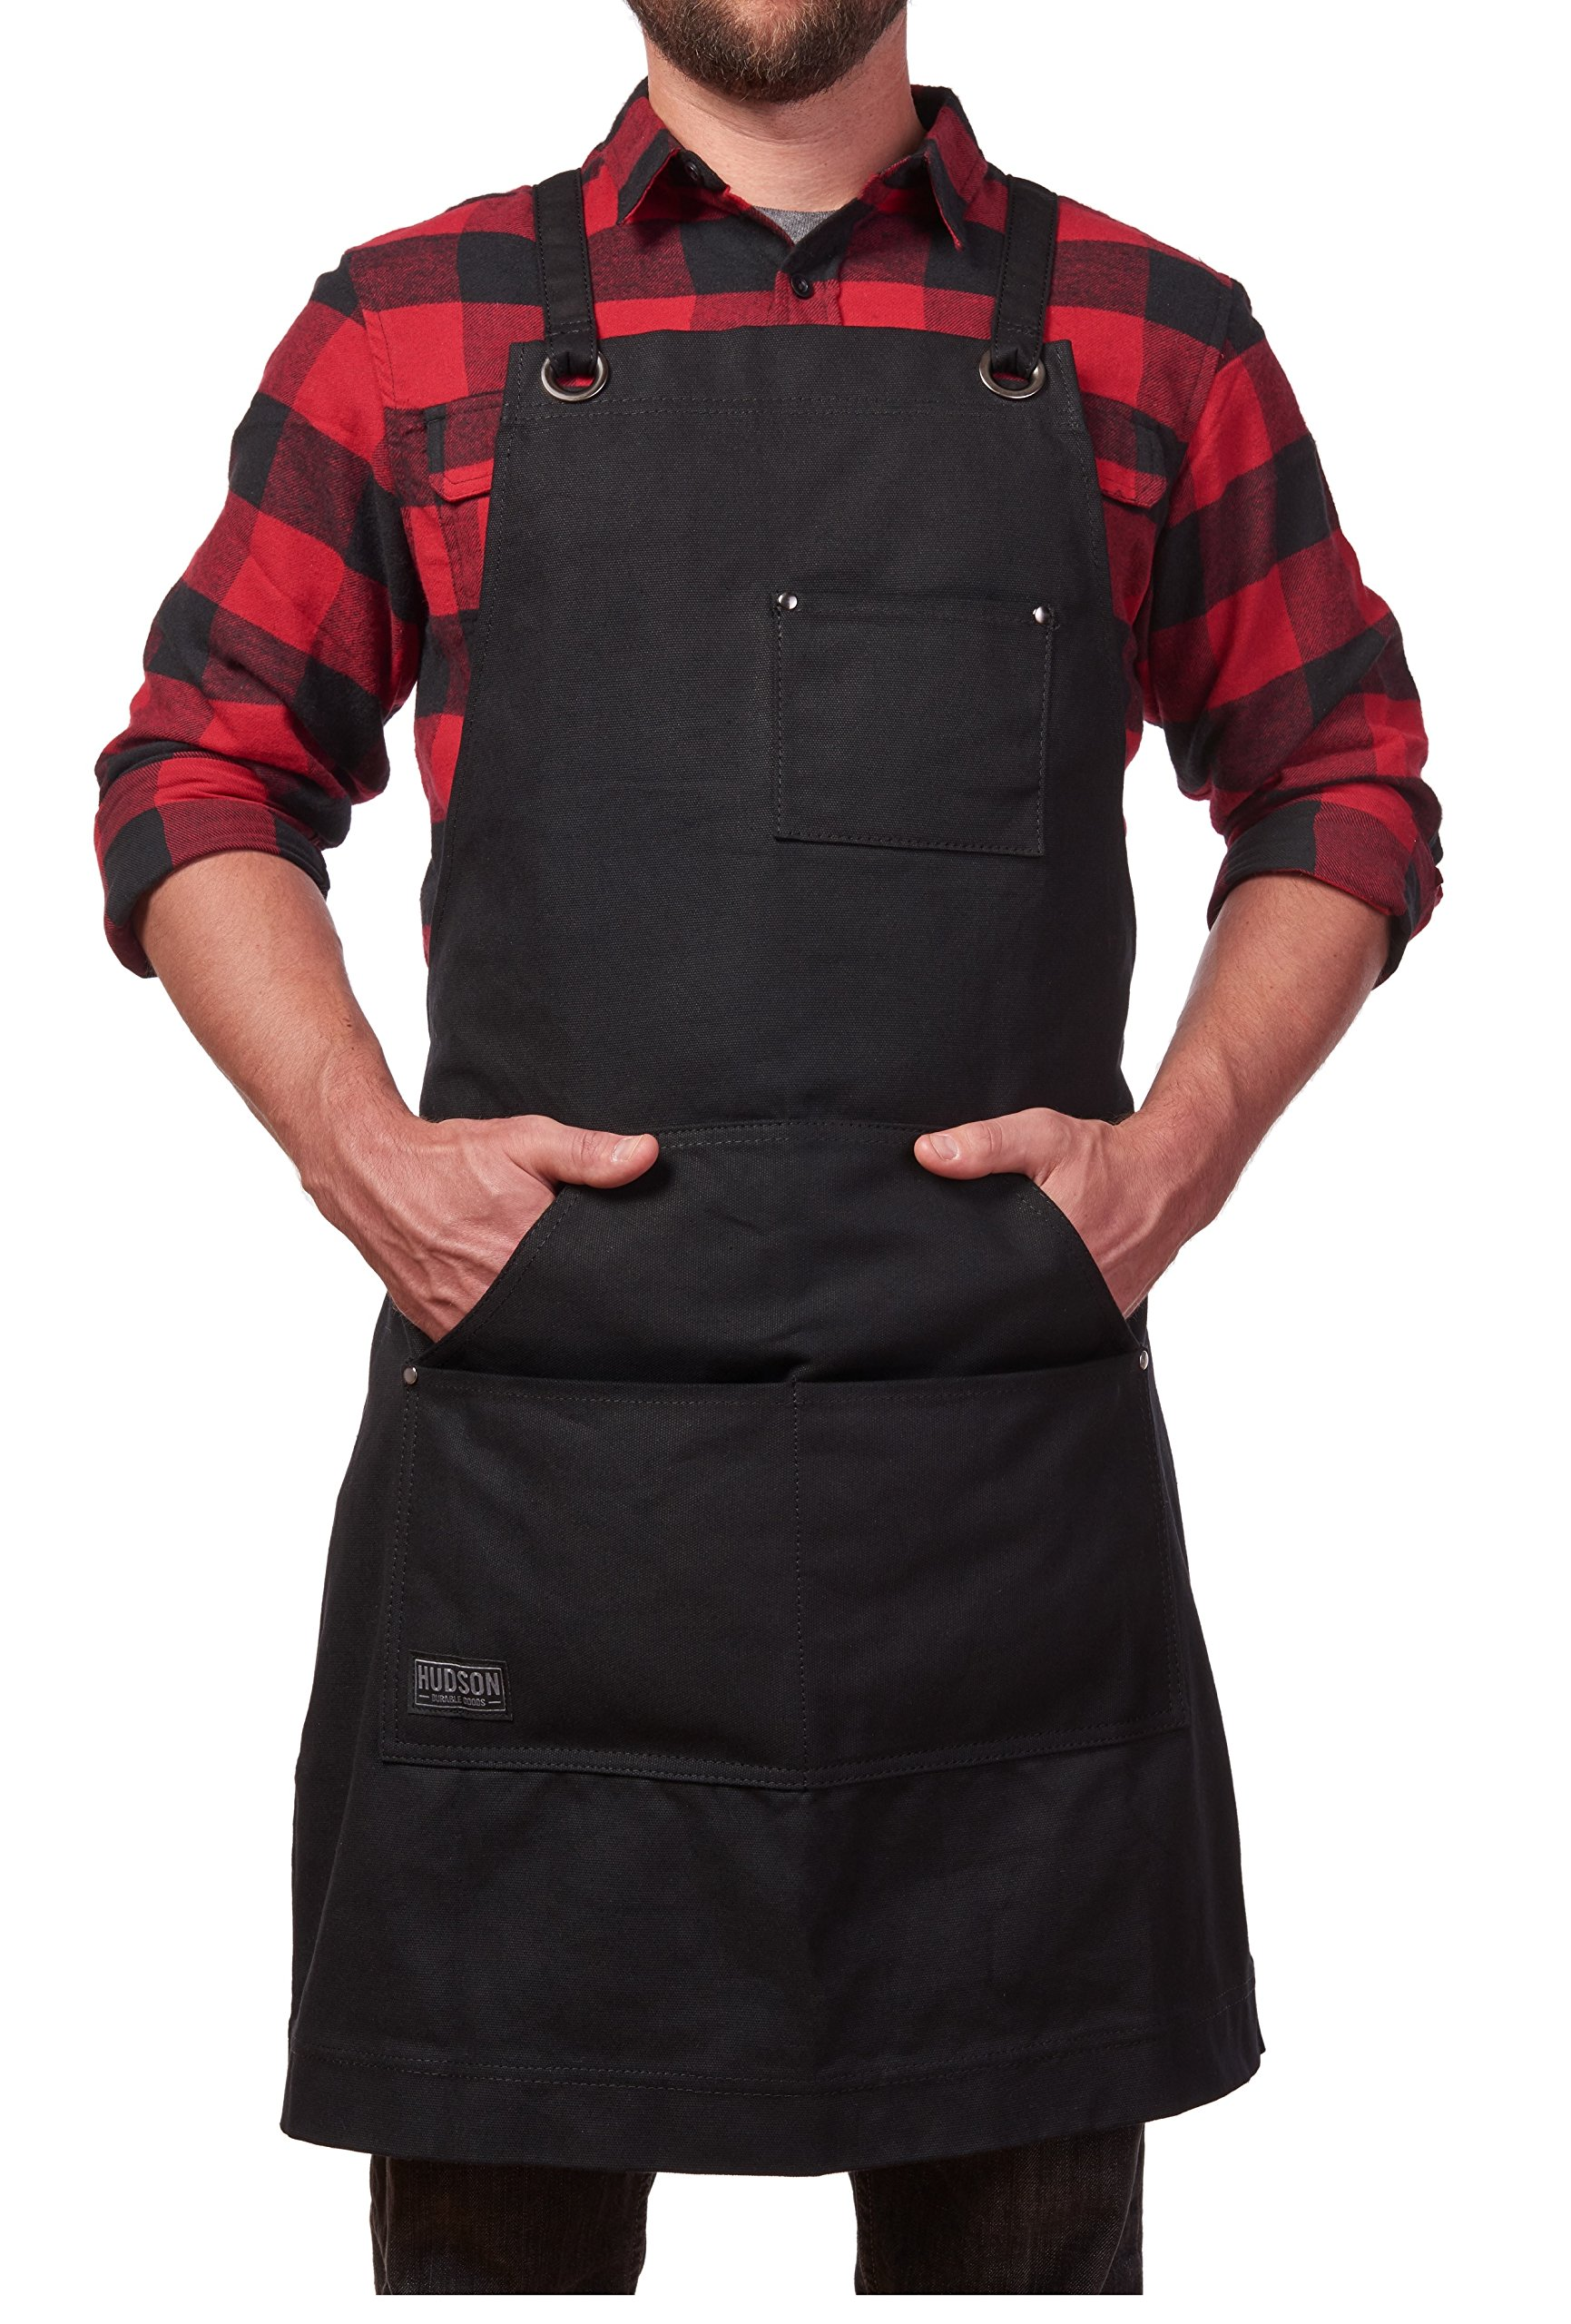 Hudson Durable Goods - Heavy Duty Waxed Canvas Work Apron with Tool Pockets (Black), Cross-Back Straps & Adjustable M to XXL by Hudson Durable Goods